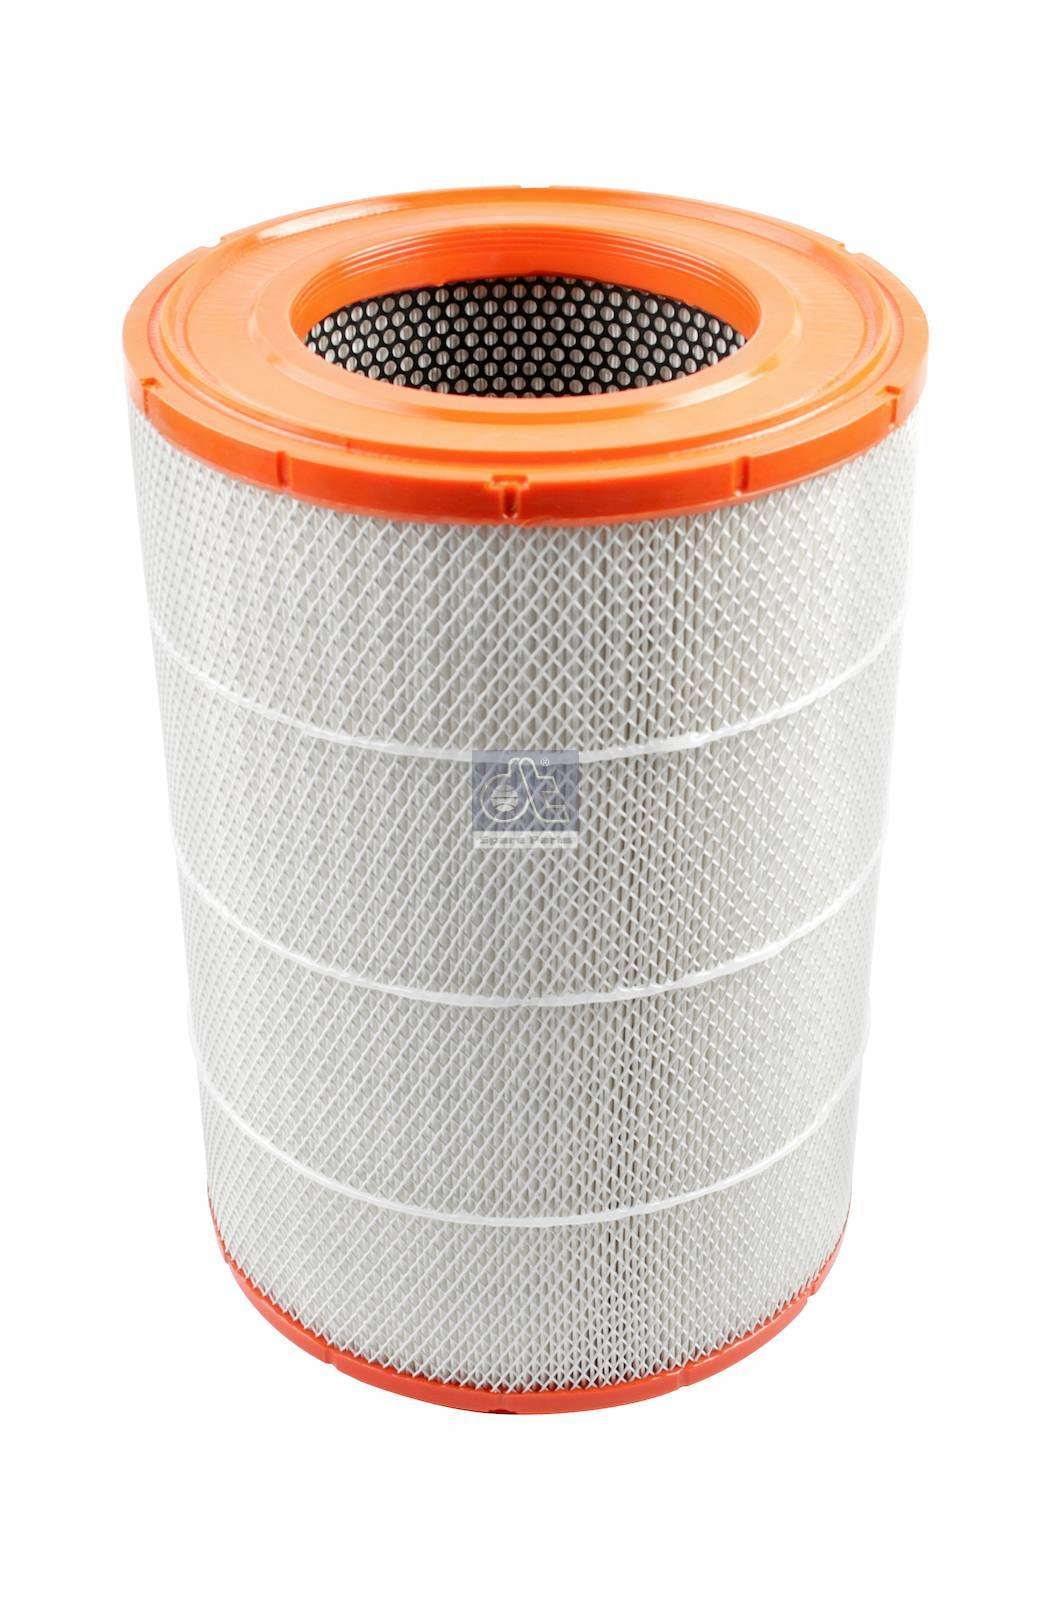 Air filter, flame retardant